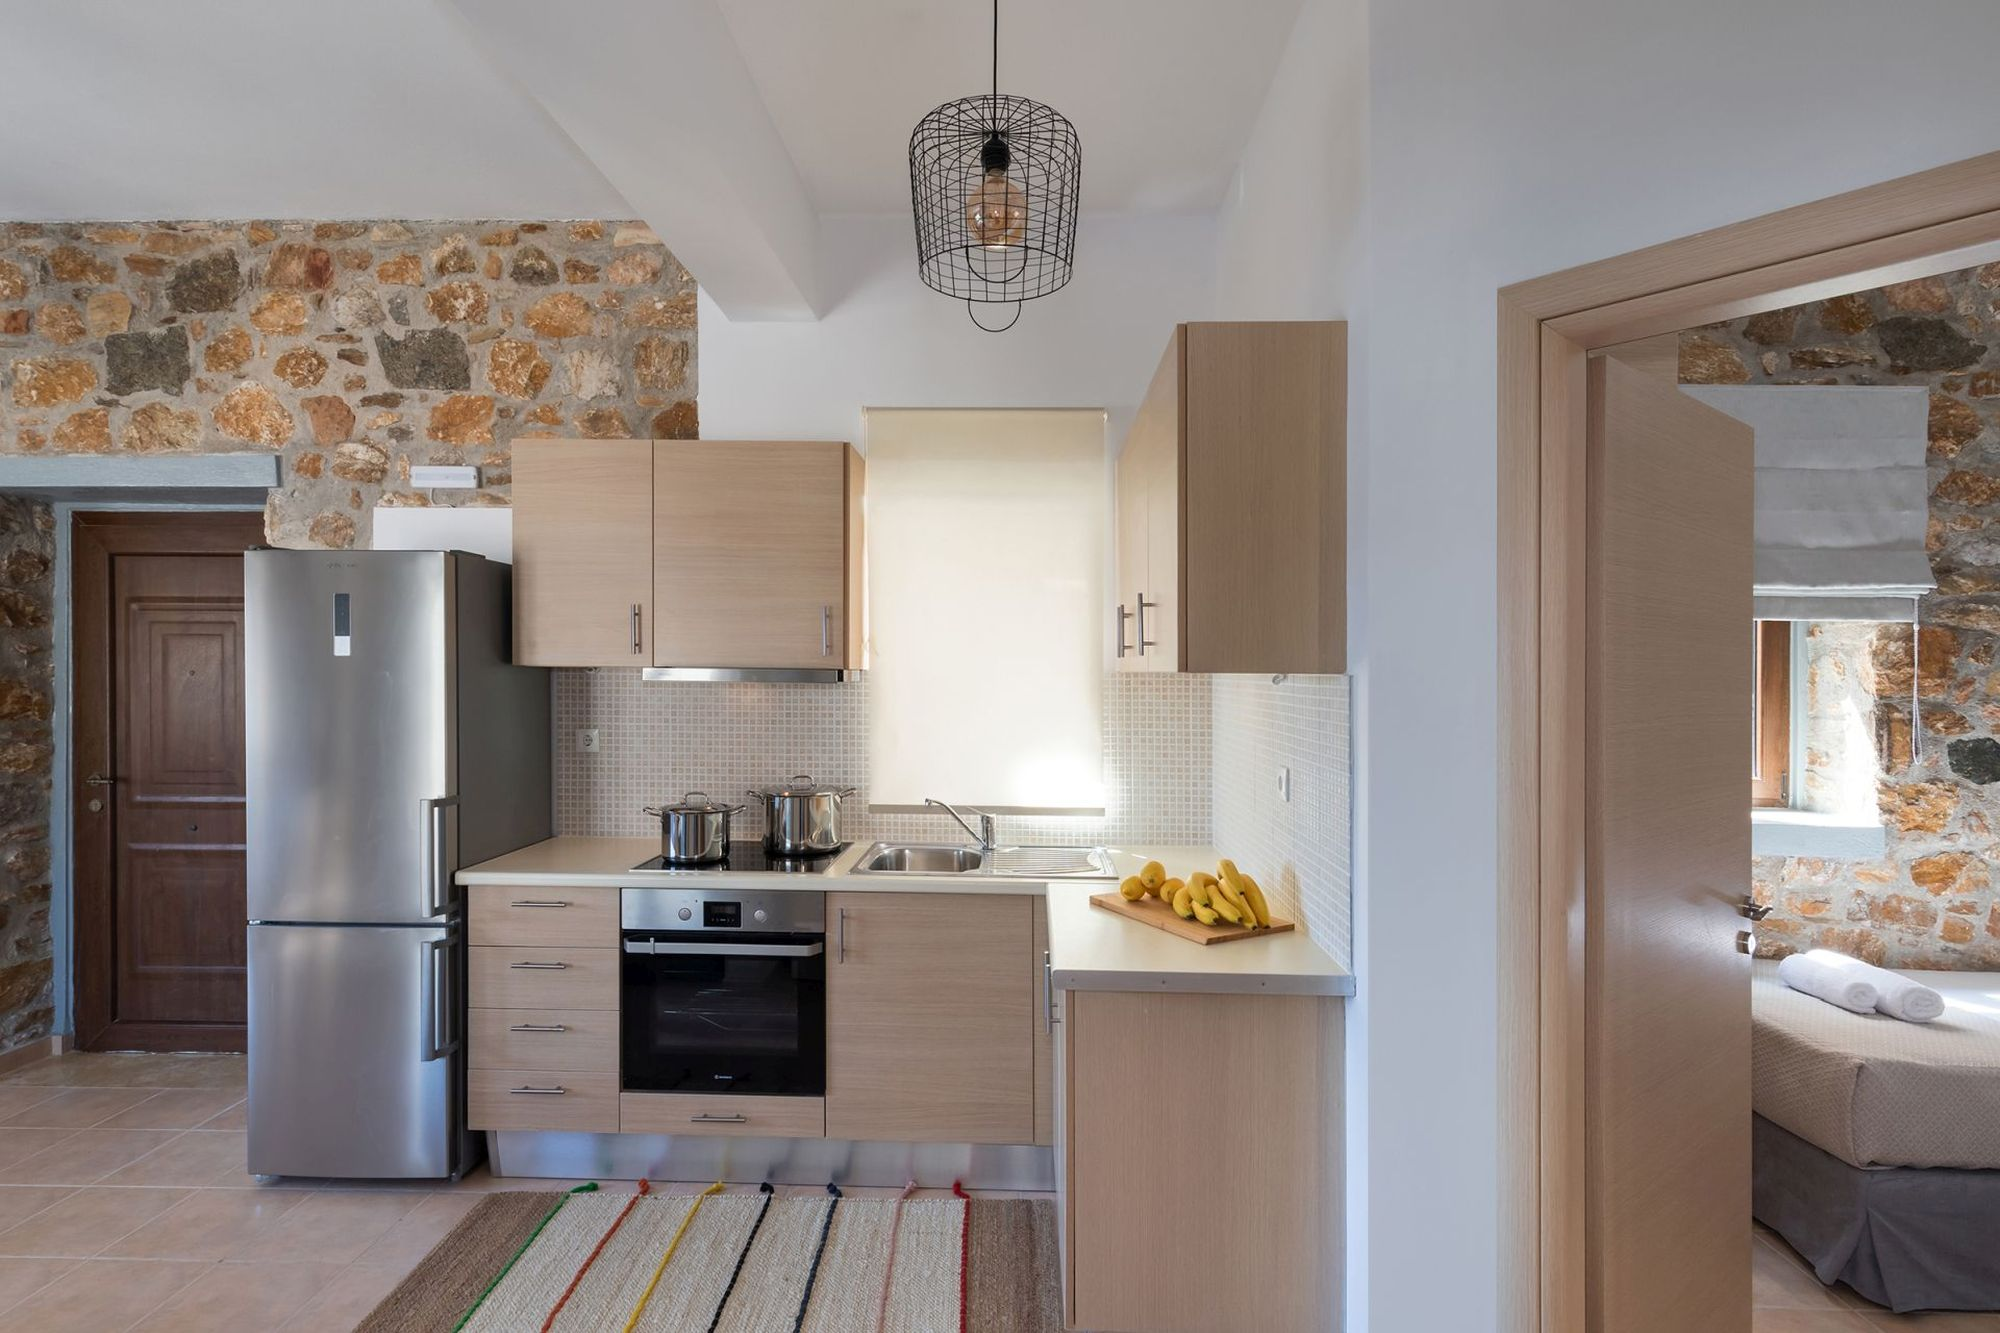 Modern kitchen in a stone built Syra Suite residence equipped with a big inox fridge and an electric cooker oven.